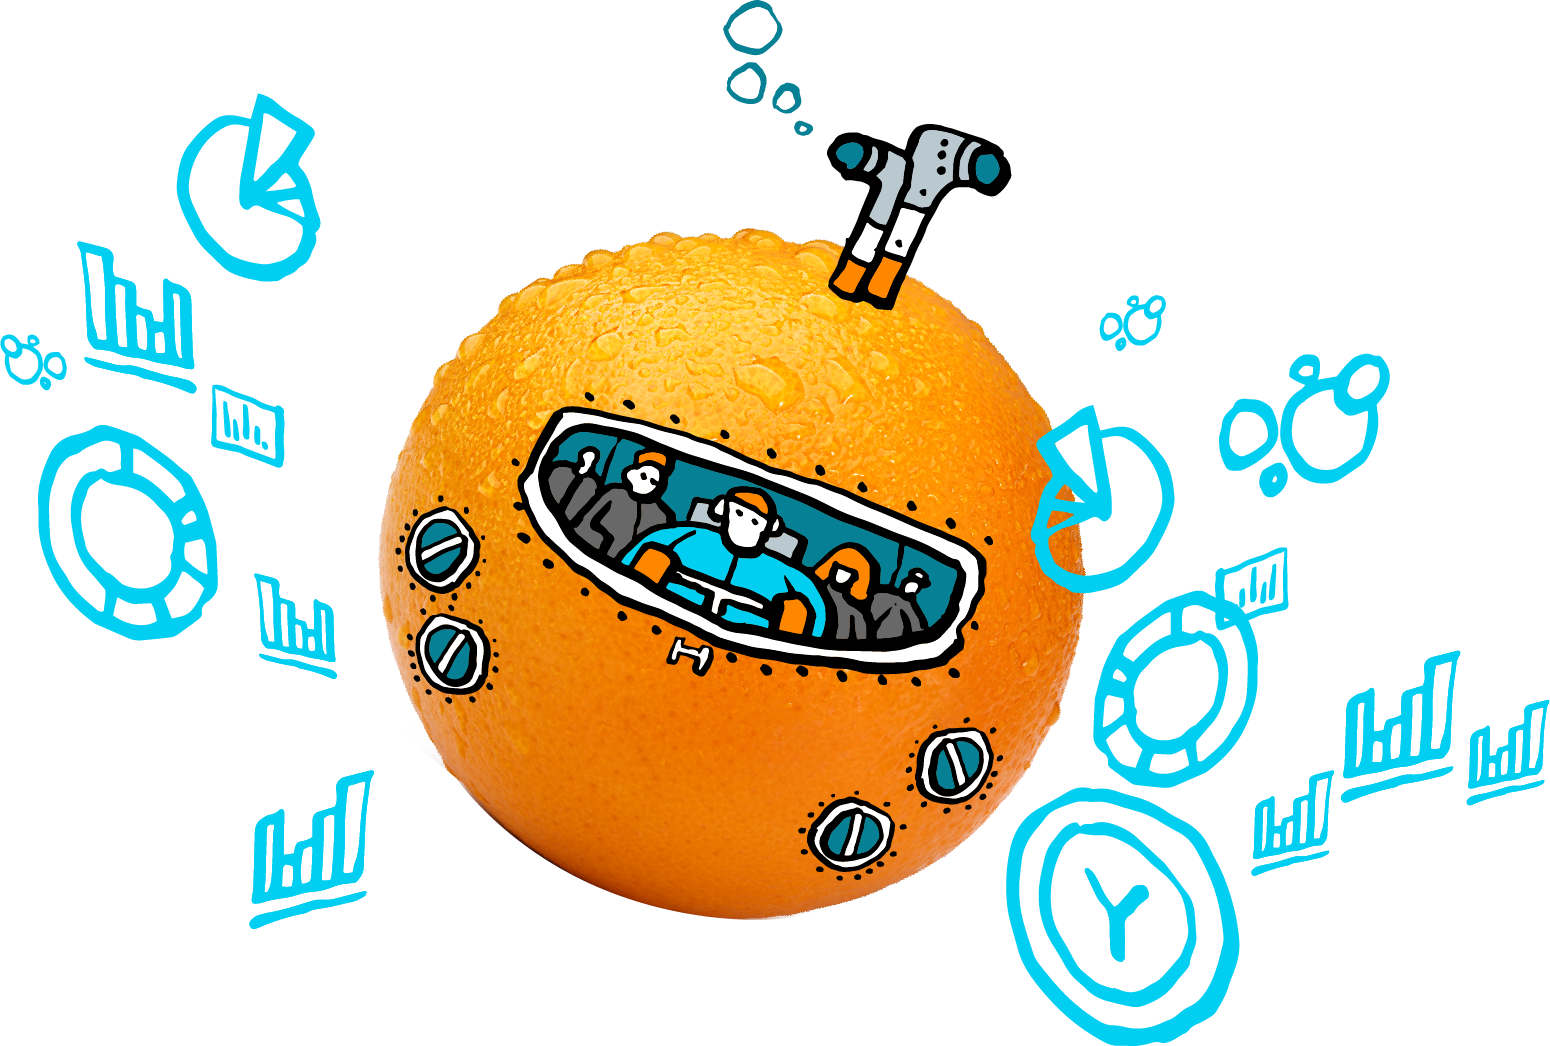 Group of individuals diving into the sea of data in their orange submarine